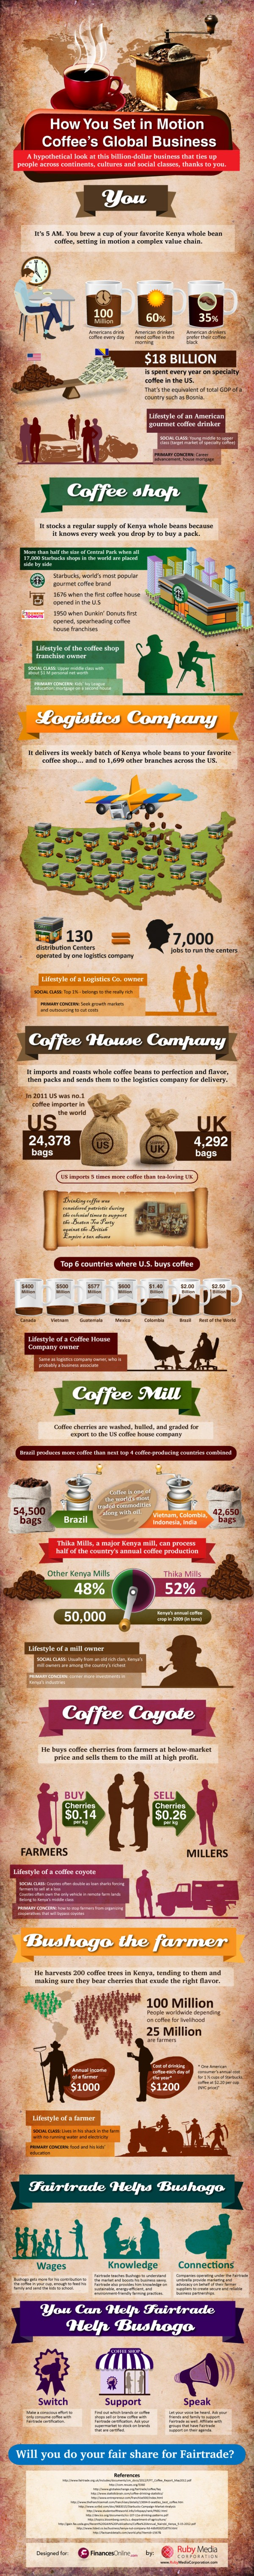 Here's How You Drive The Economics of Coffee